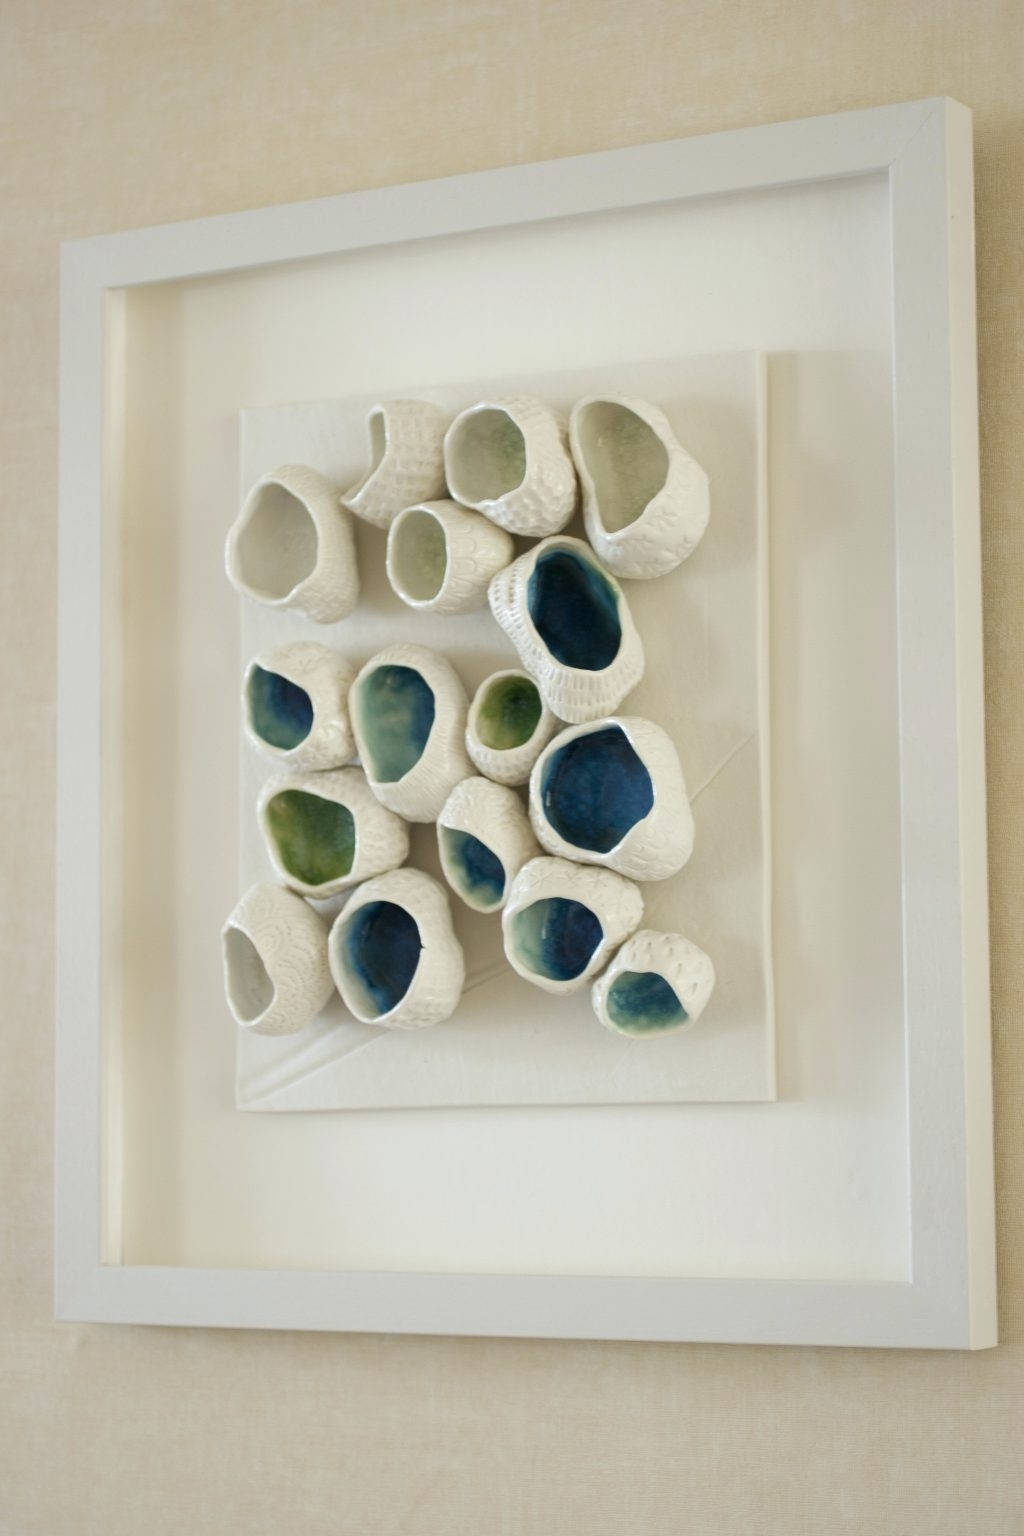 Scattered Italian Plates Wall Art Intended For Fashionable Wall Arts ~ Ceramics Wall Art Italian Ceramics Wall Art Scattered (Gallery 8 of 15)